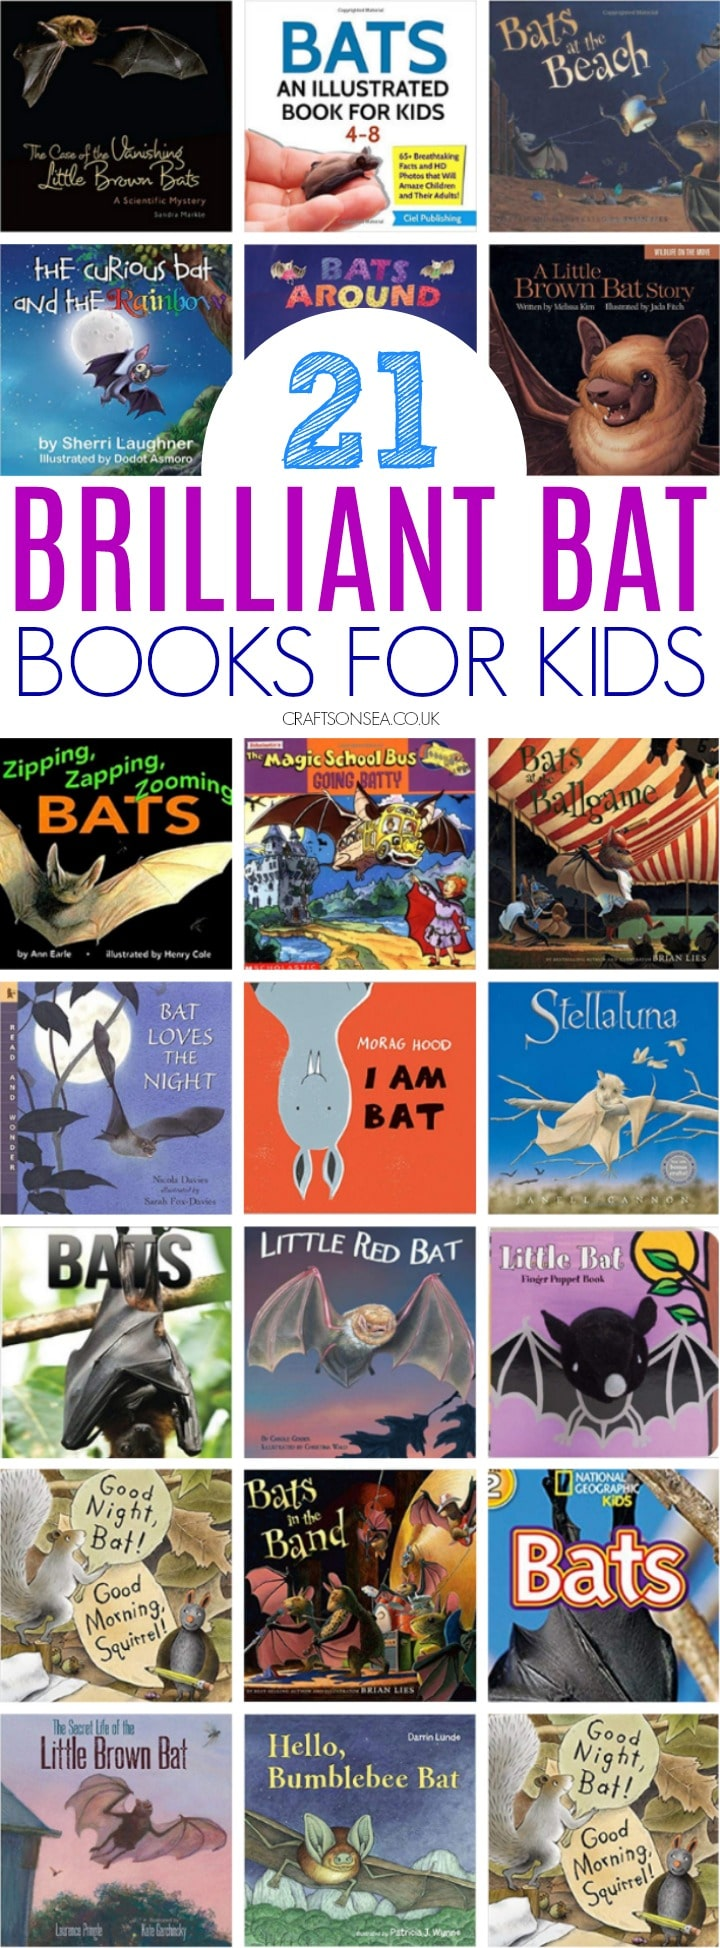 collage of bat books for kids, preschool and first graders